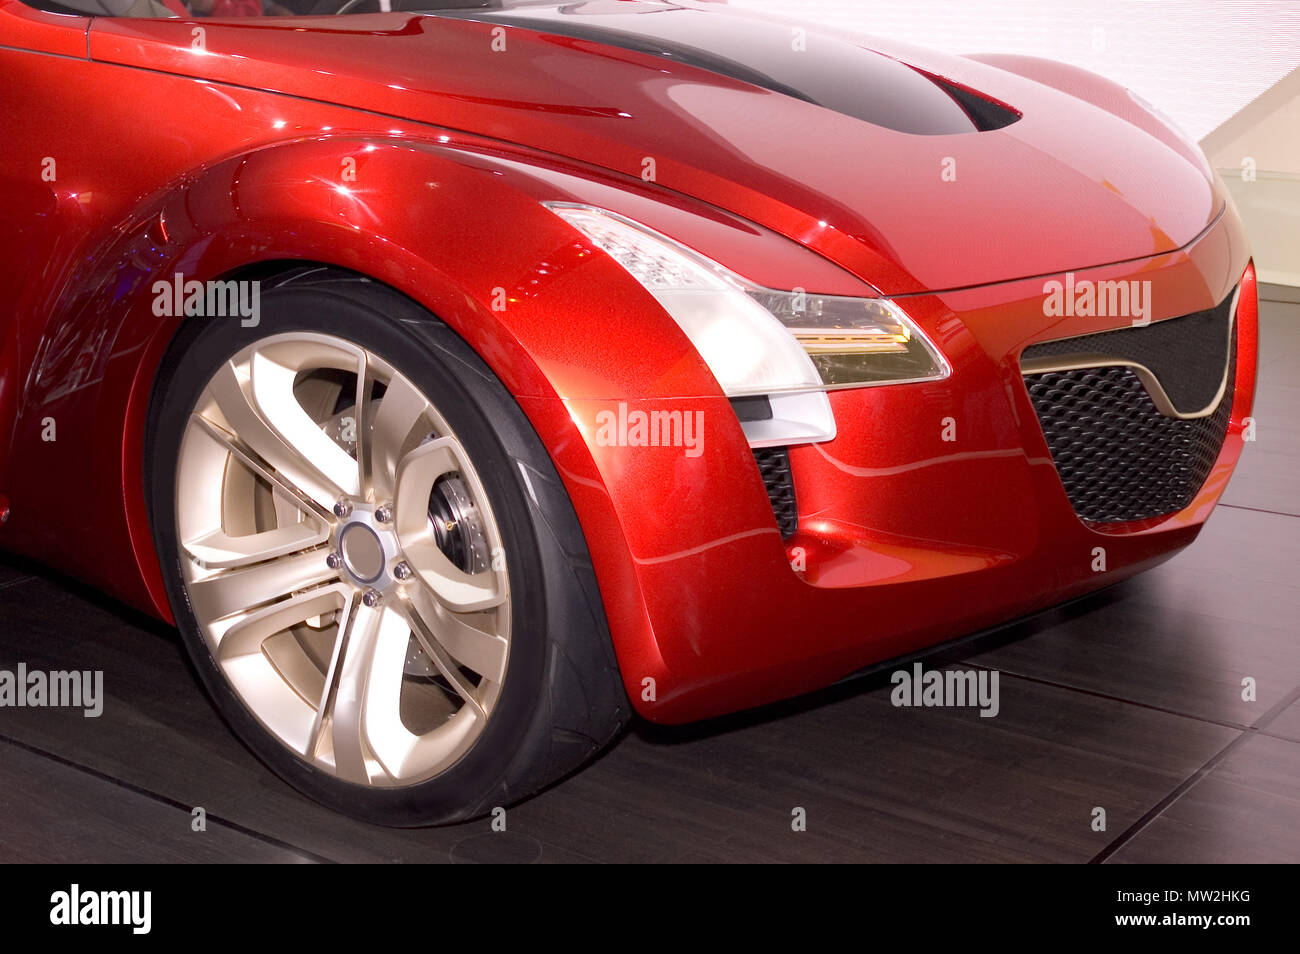 A close-up look at the design of a concept cars front end. Seen at the 2006 Detroit auto show. Many more cars in my gallery. - Stock Image